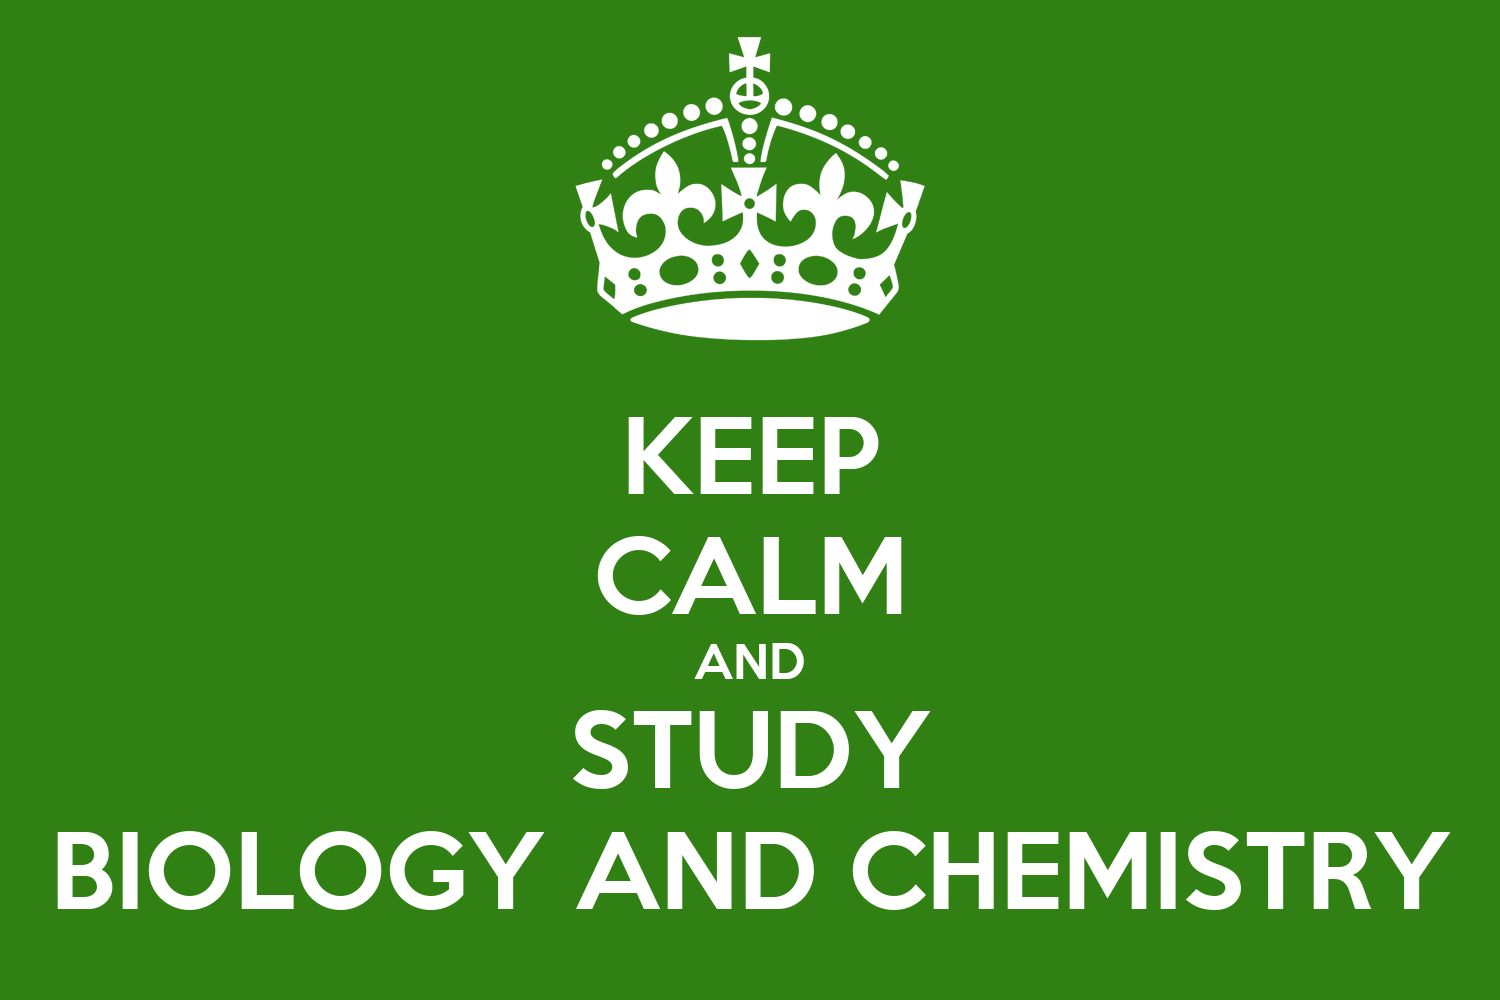 chemistry and biology The central mission of the college of chemistry is to advance society through education and research, and we have made it our responsibility to fulfill this mission.